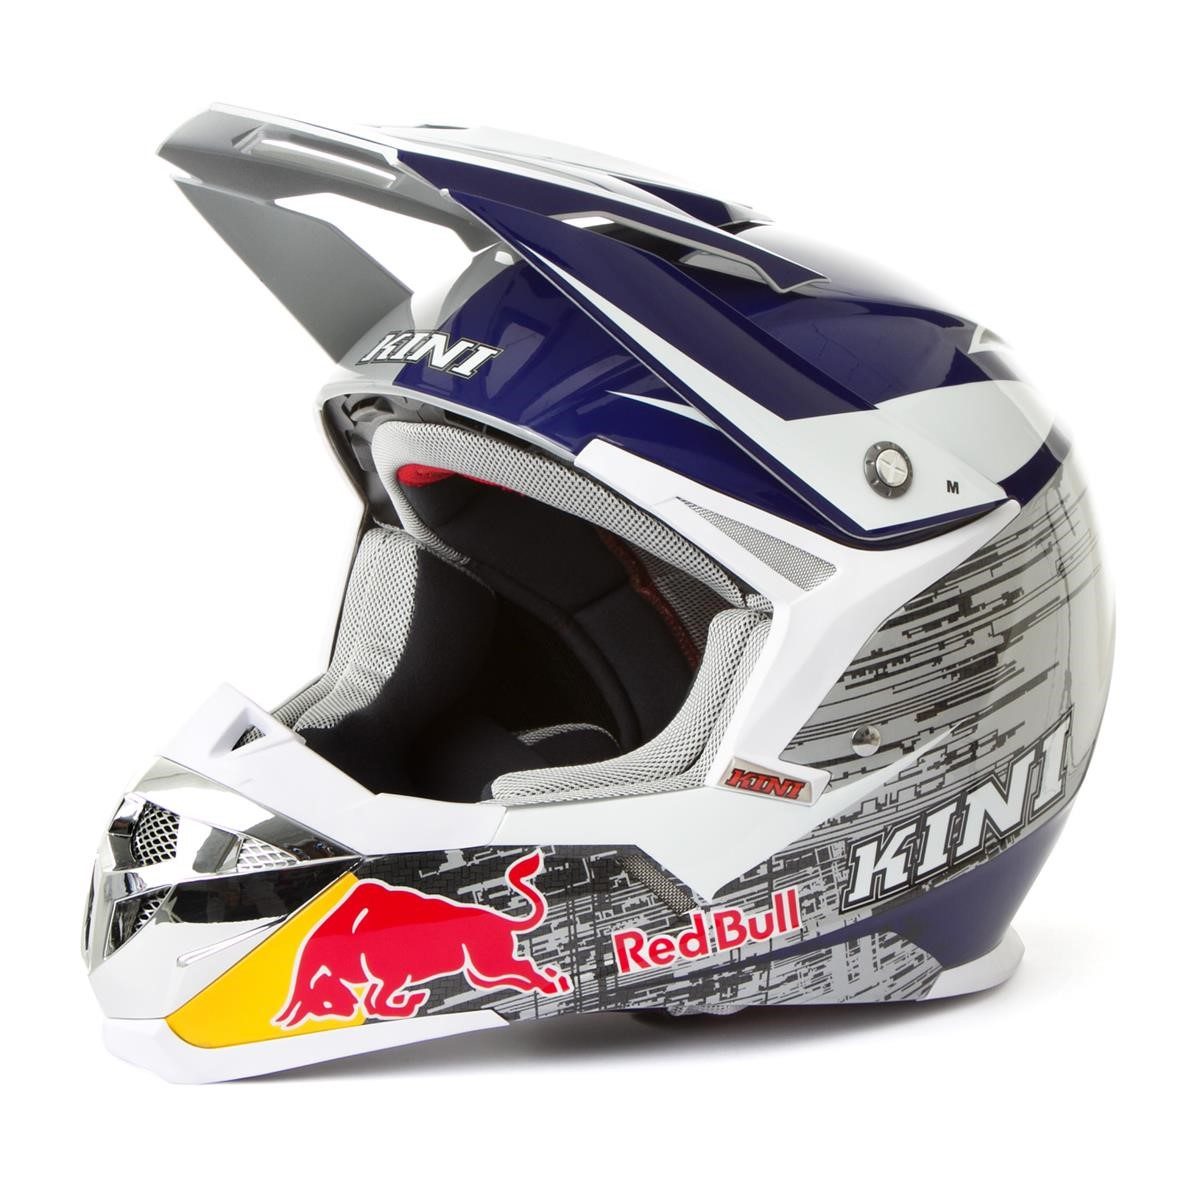 kini red bull casque taille s mx motocross enduro quad. Black Bedroom Furniture Sets. Home Design Ideas